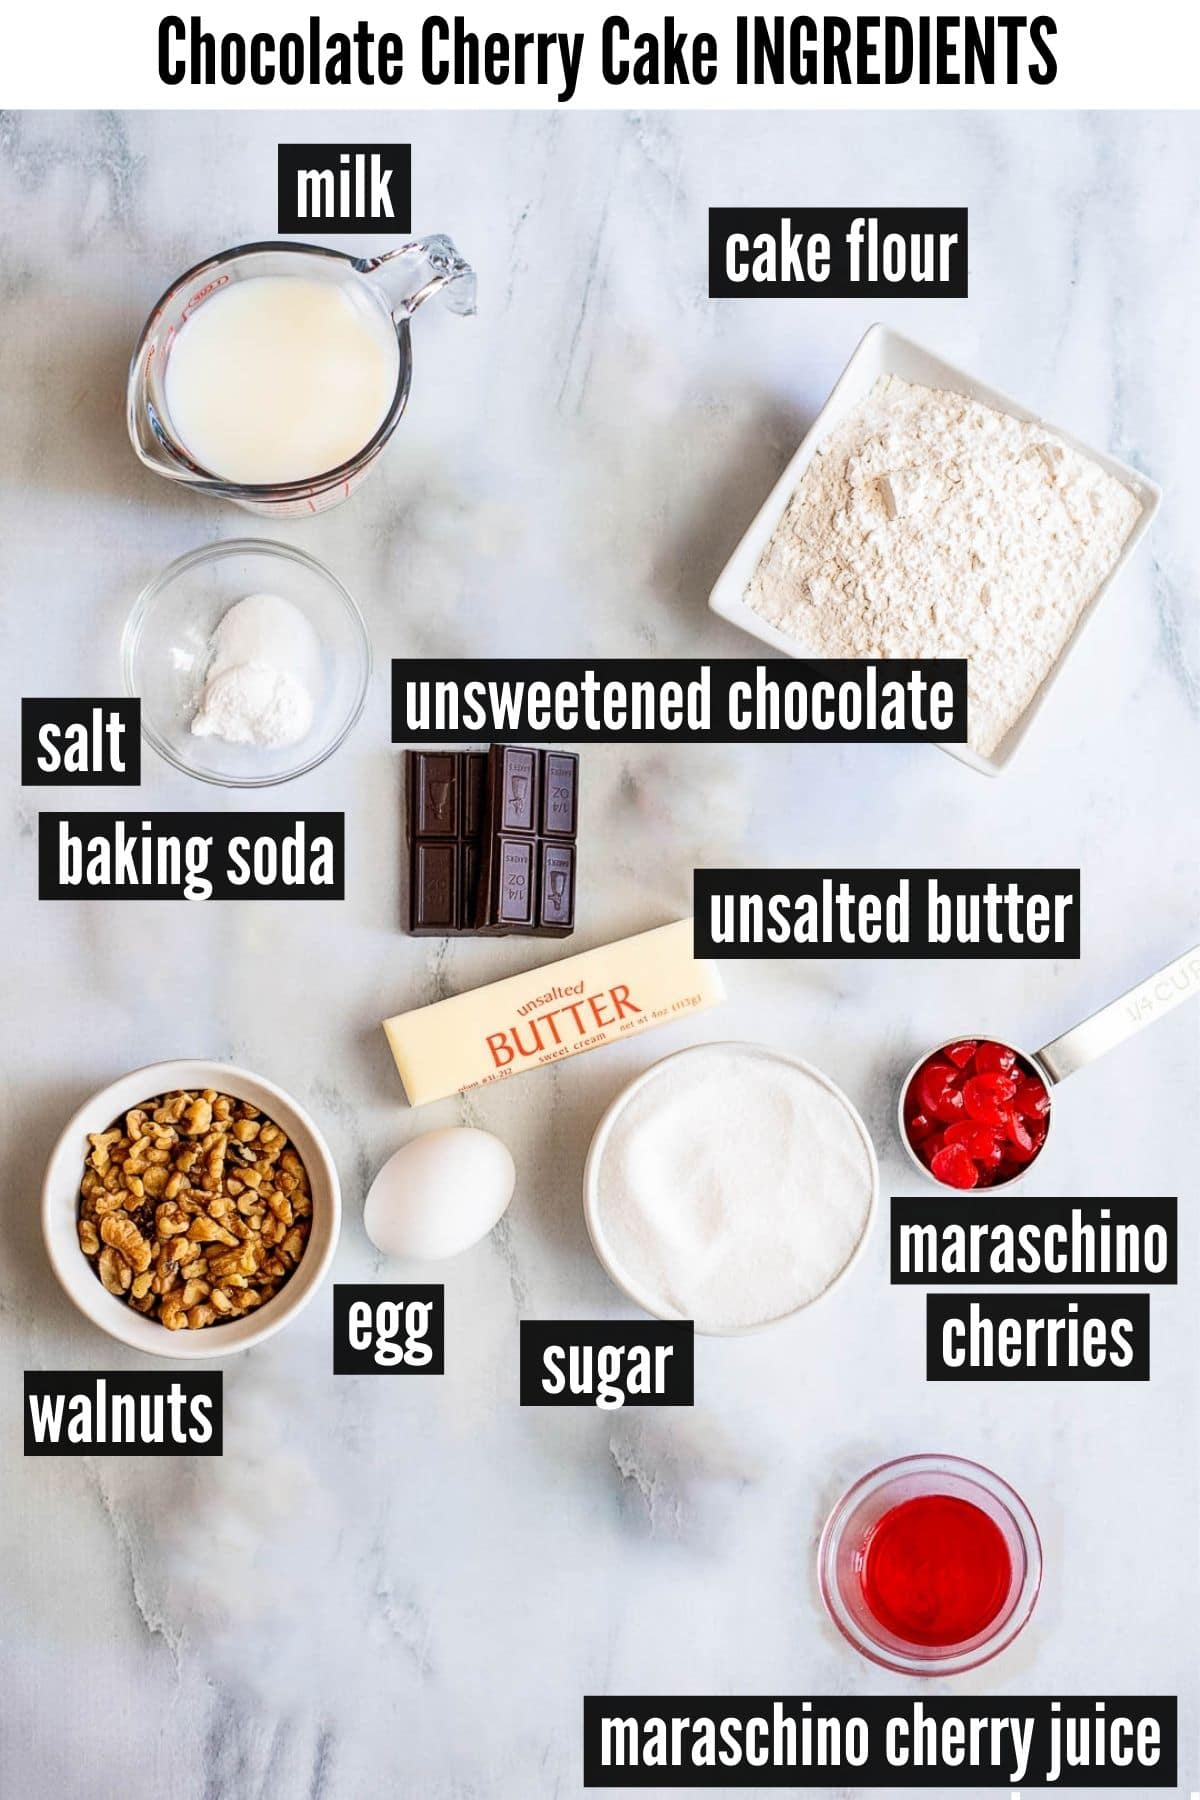 Chocolate Cherry Cake ingredients labeled